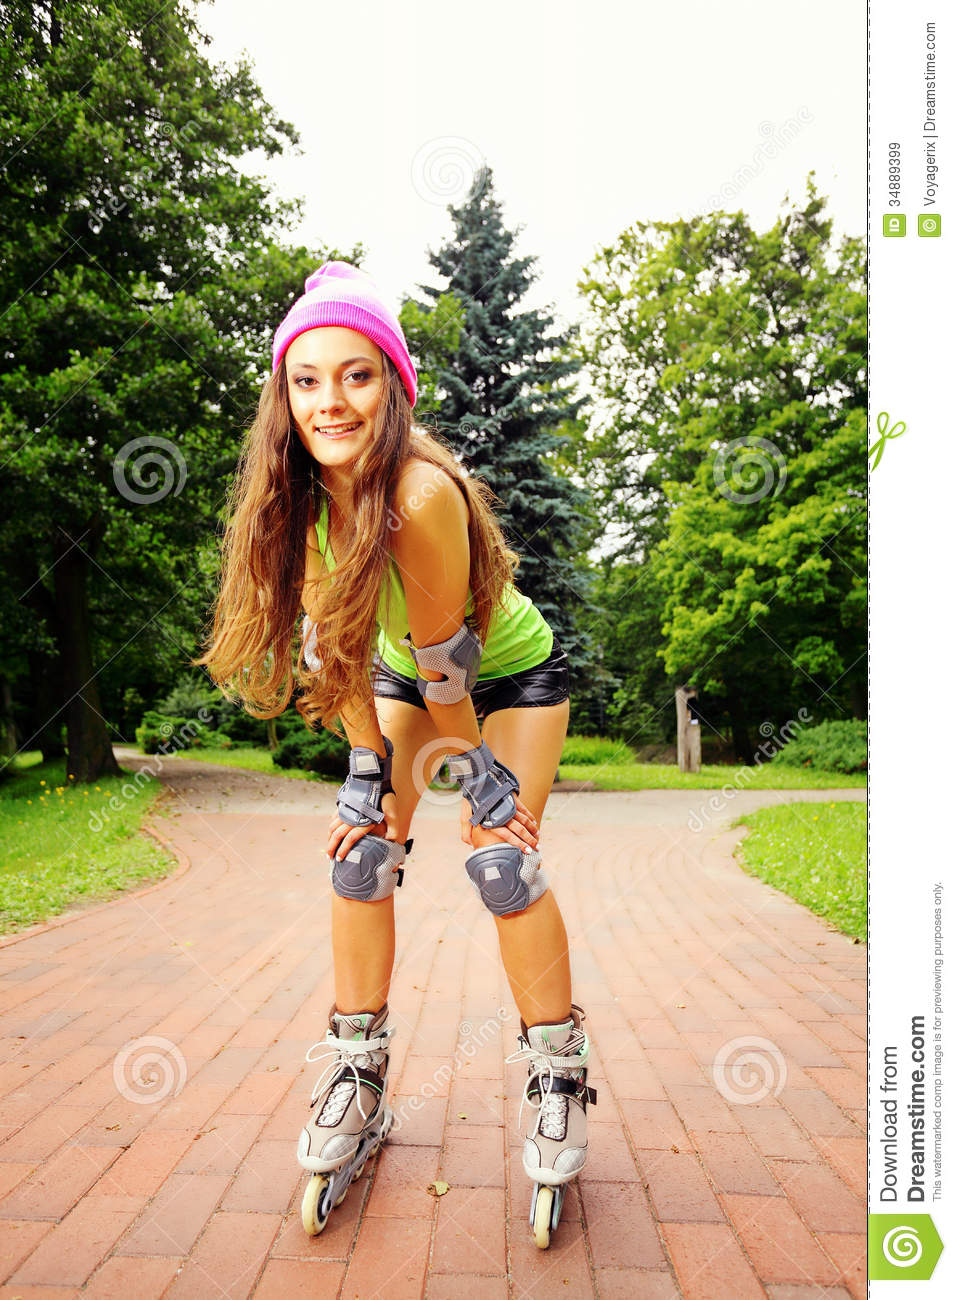 Woman Roller Skating Sport Activity In Park Royalty Free Stock Images ...